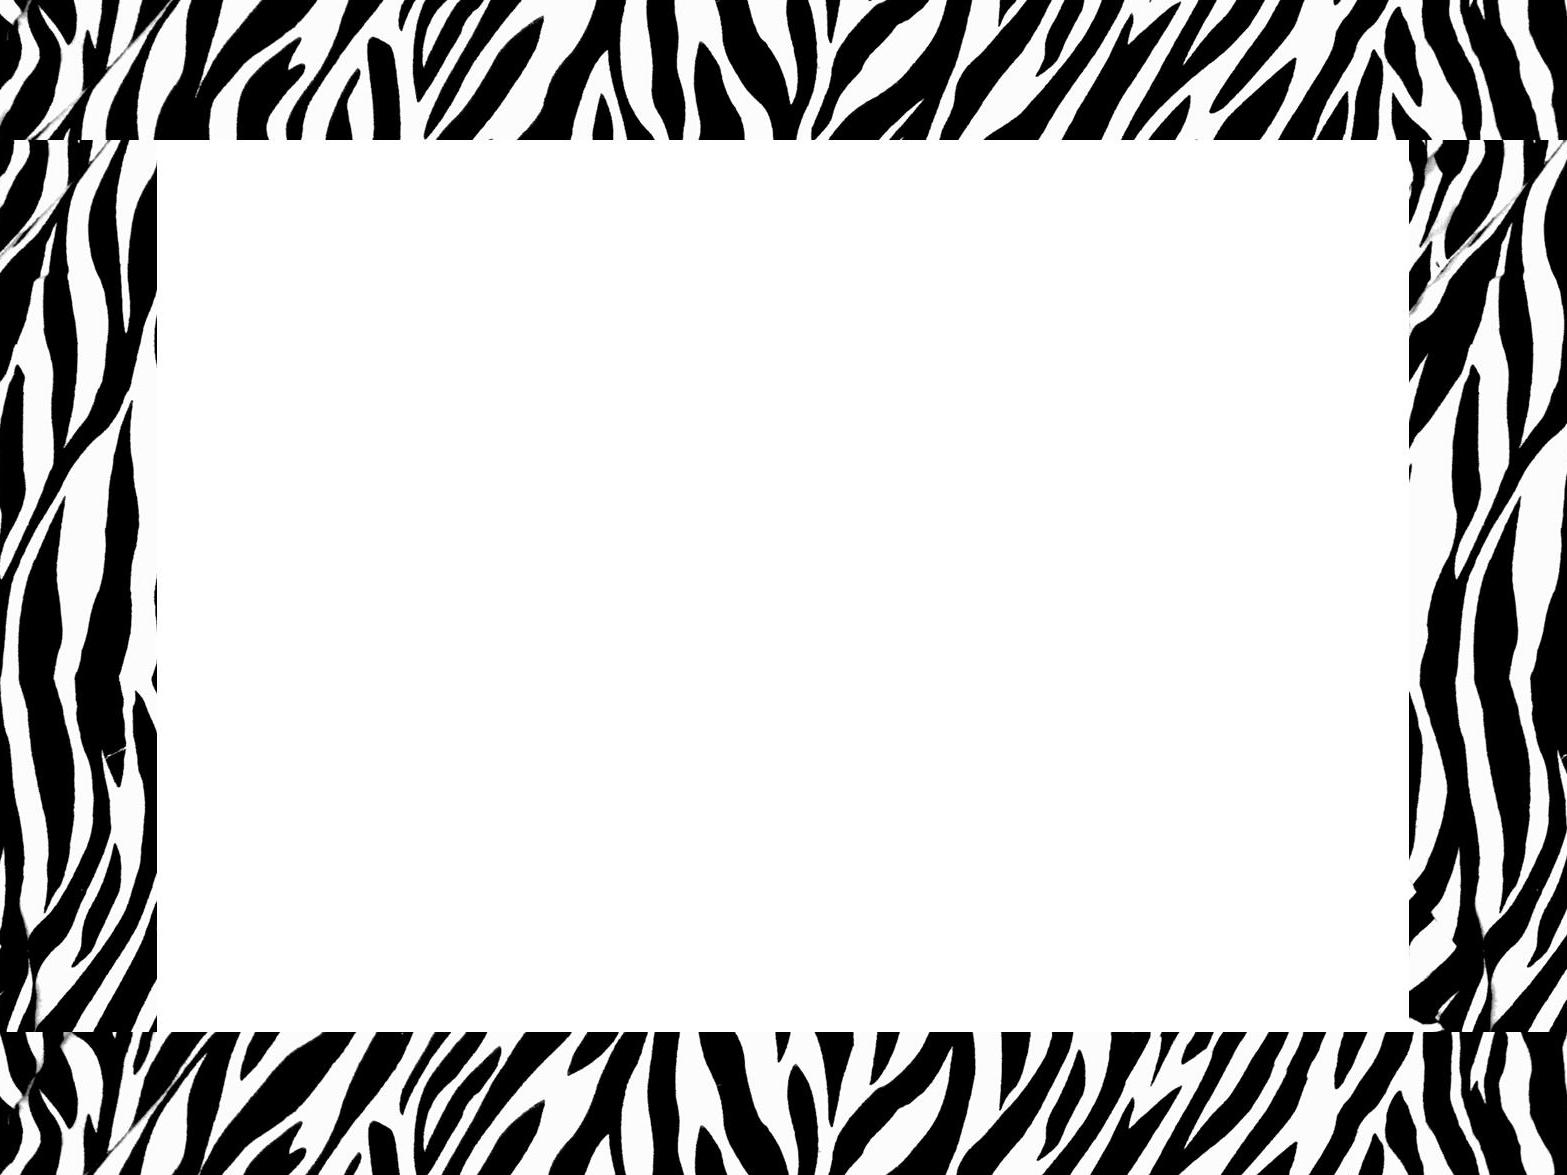 Free Printable Zebra Print Border Template